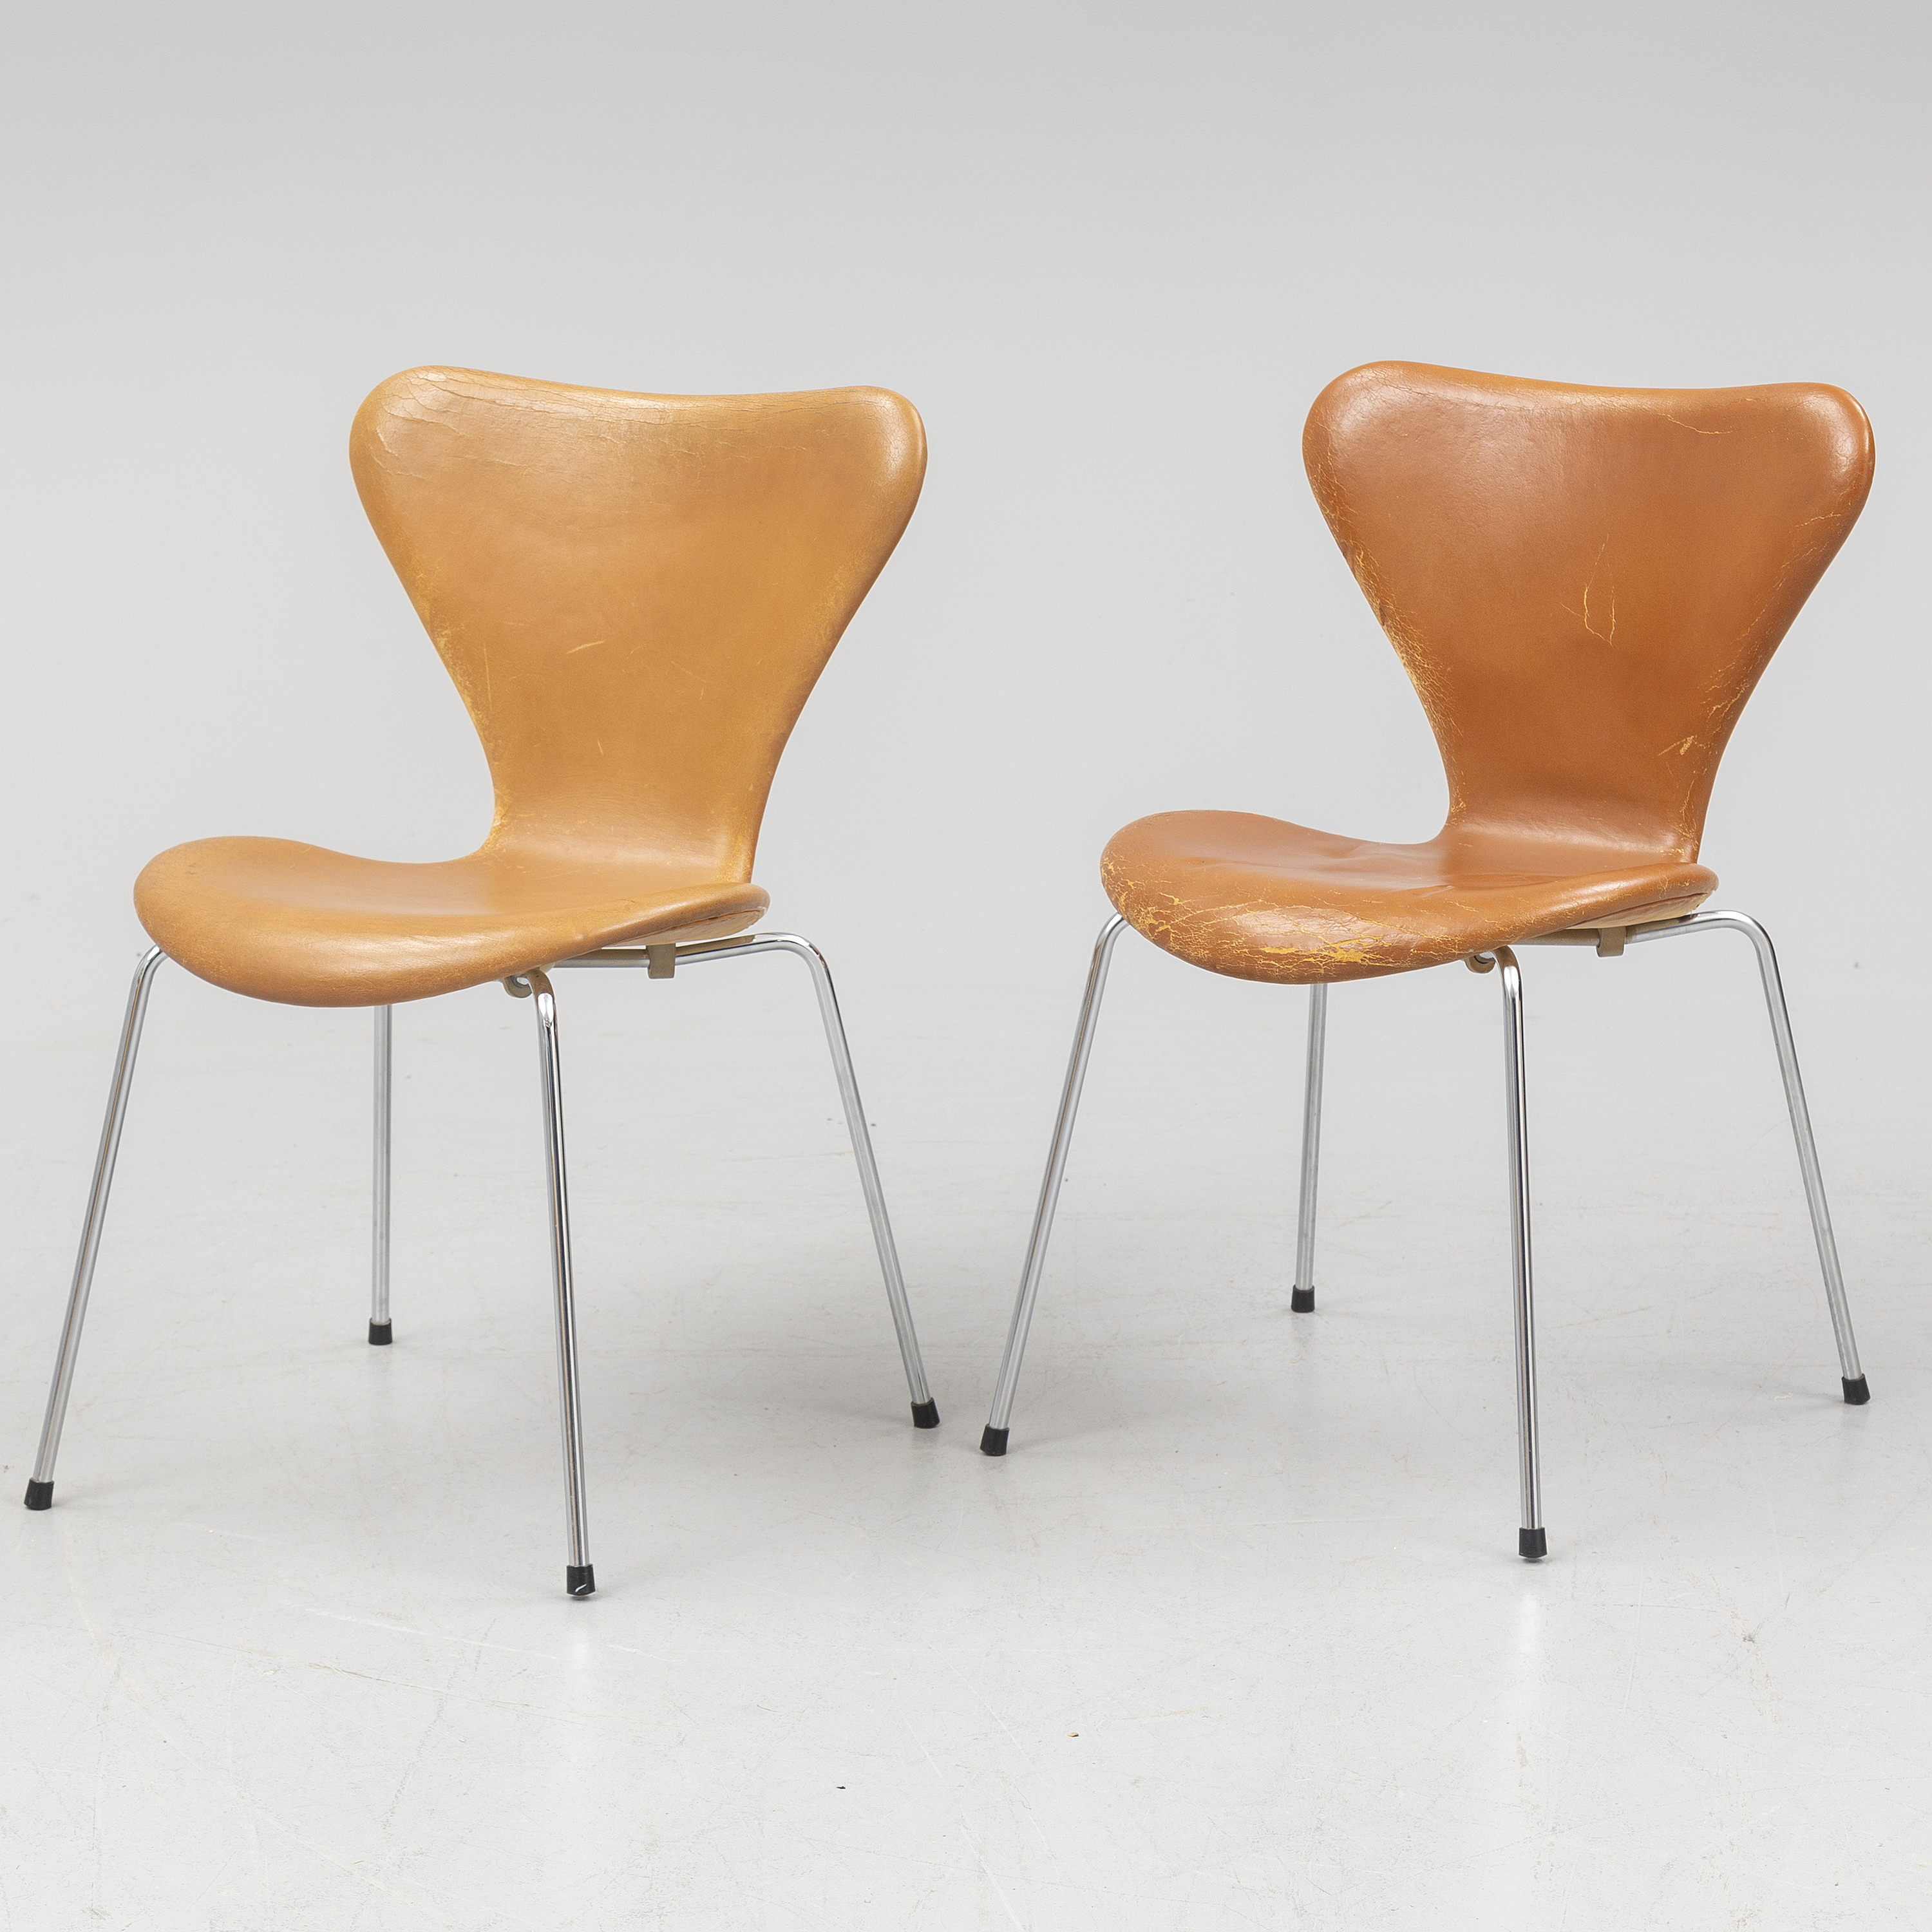 Pleasing Arne Jacobsen A Pair Of Sjuan Leather Chairs Bukowskis Pabps2019 Chair Design Images Pabps2019Com